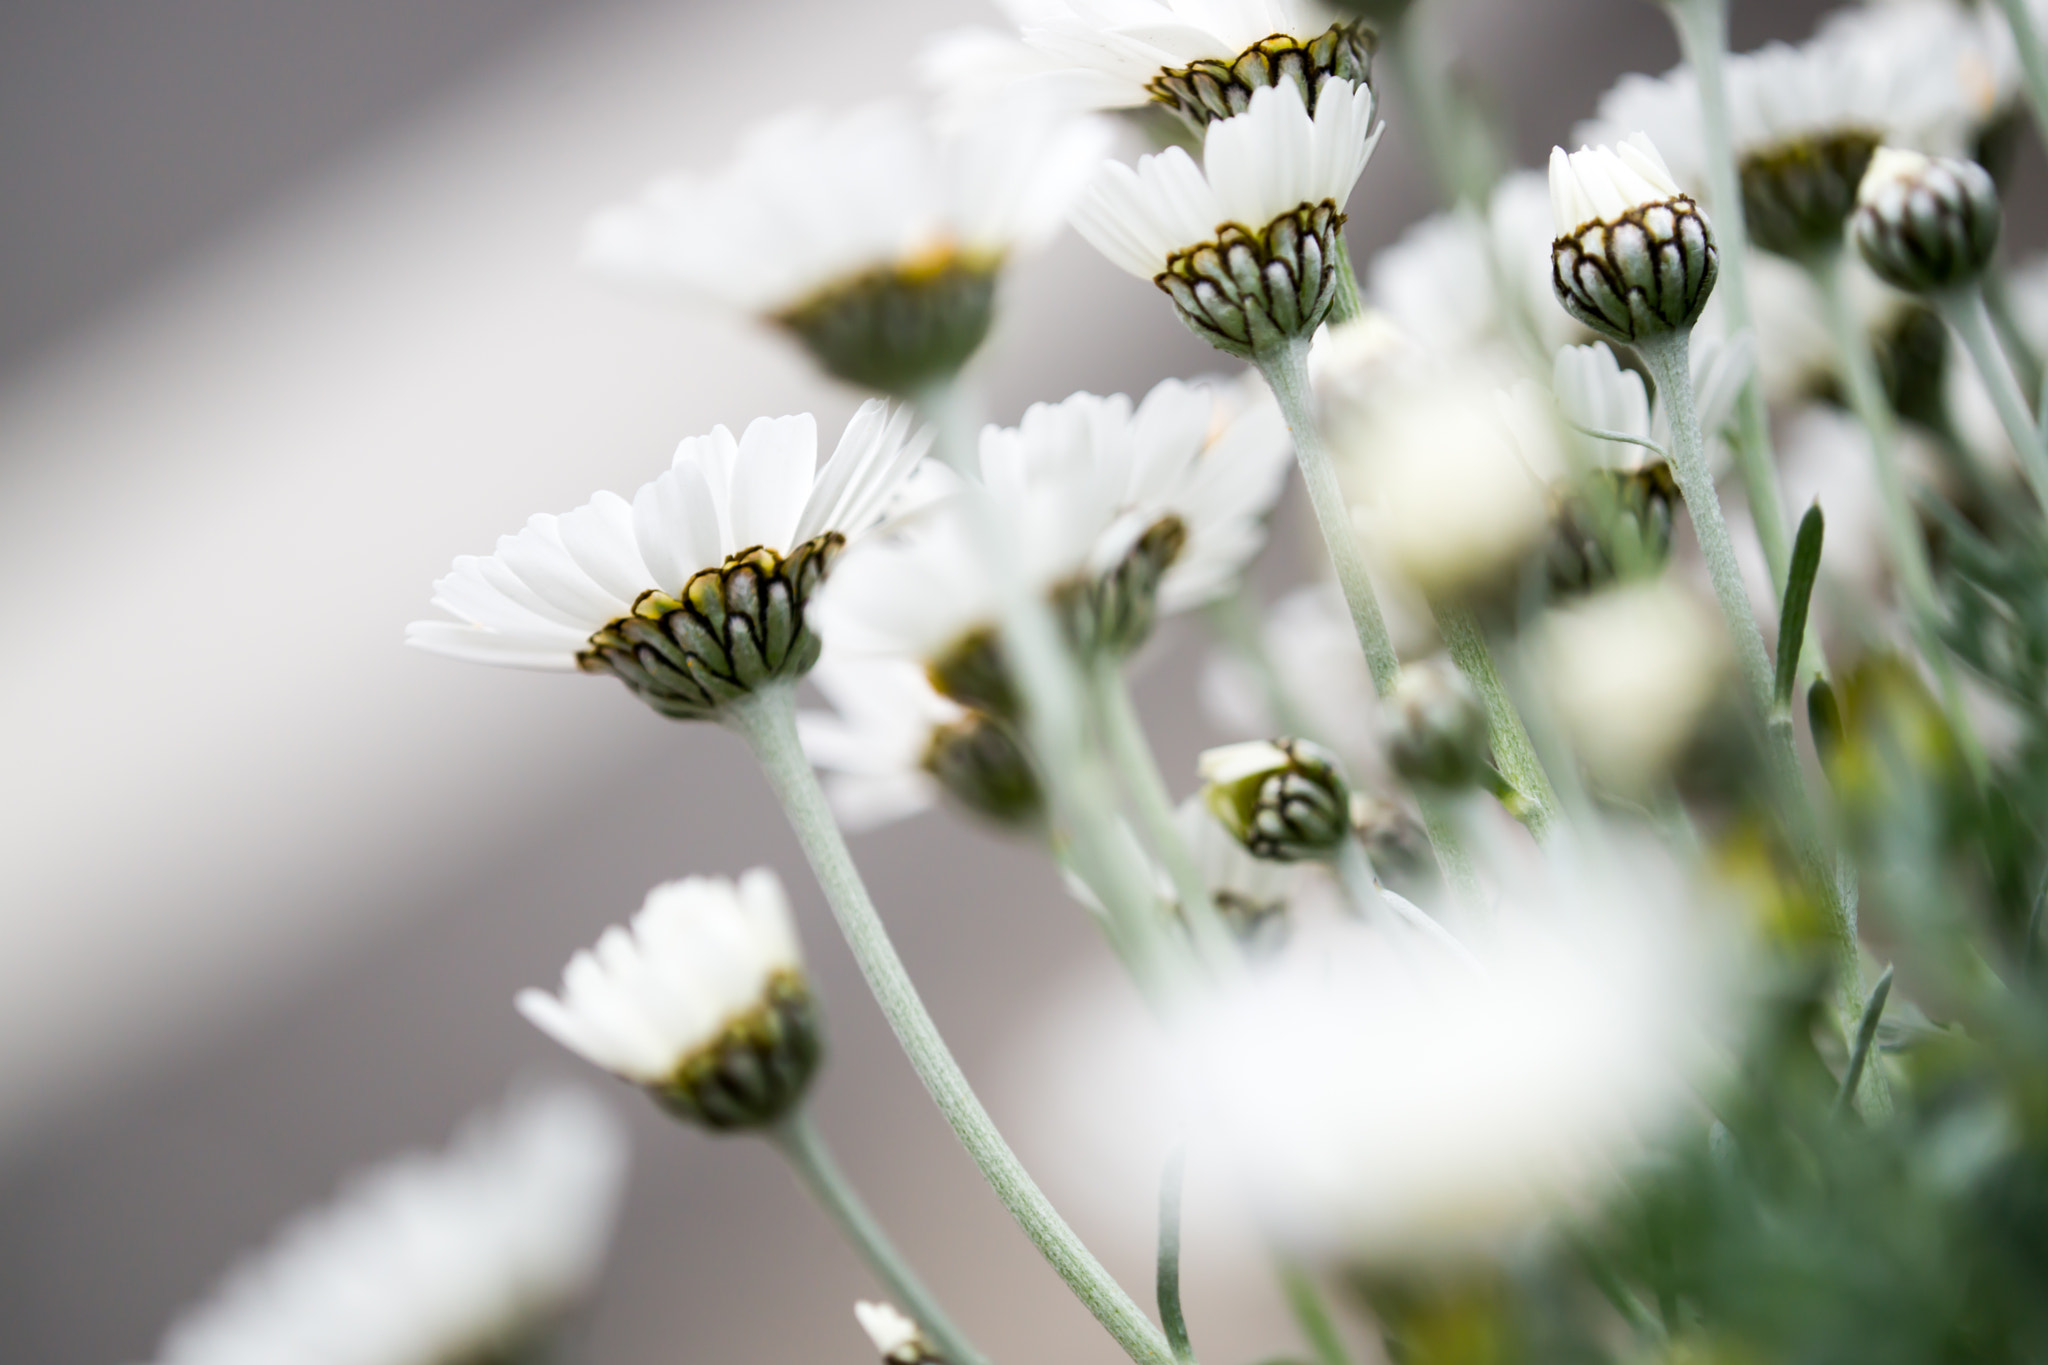 Photograph White flowers by marbee .info on 500px